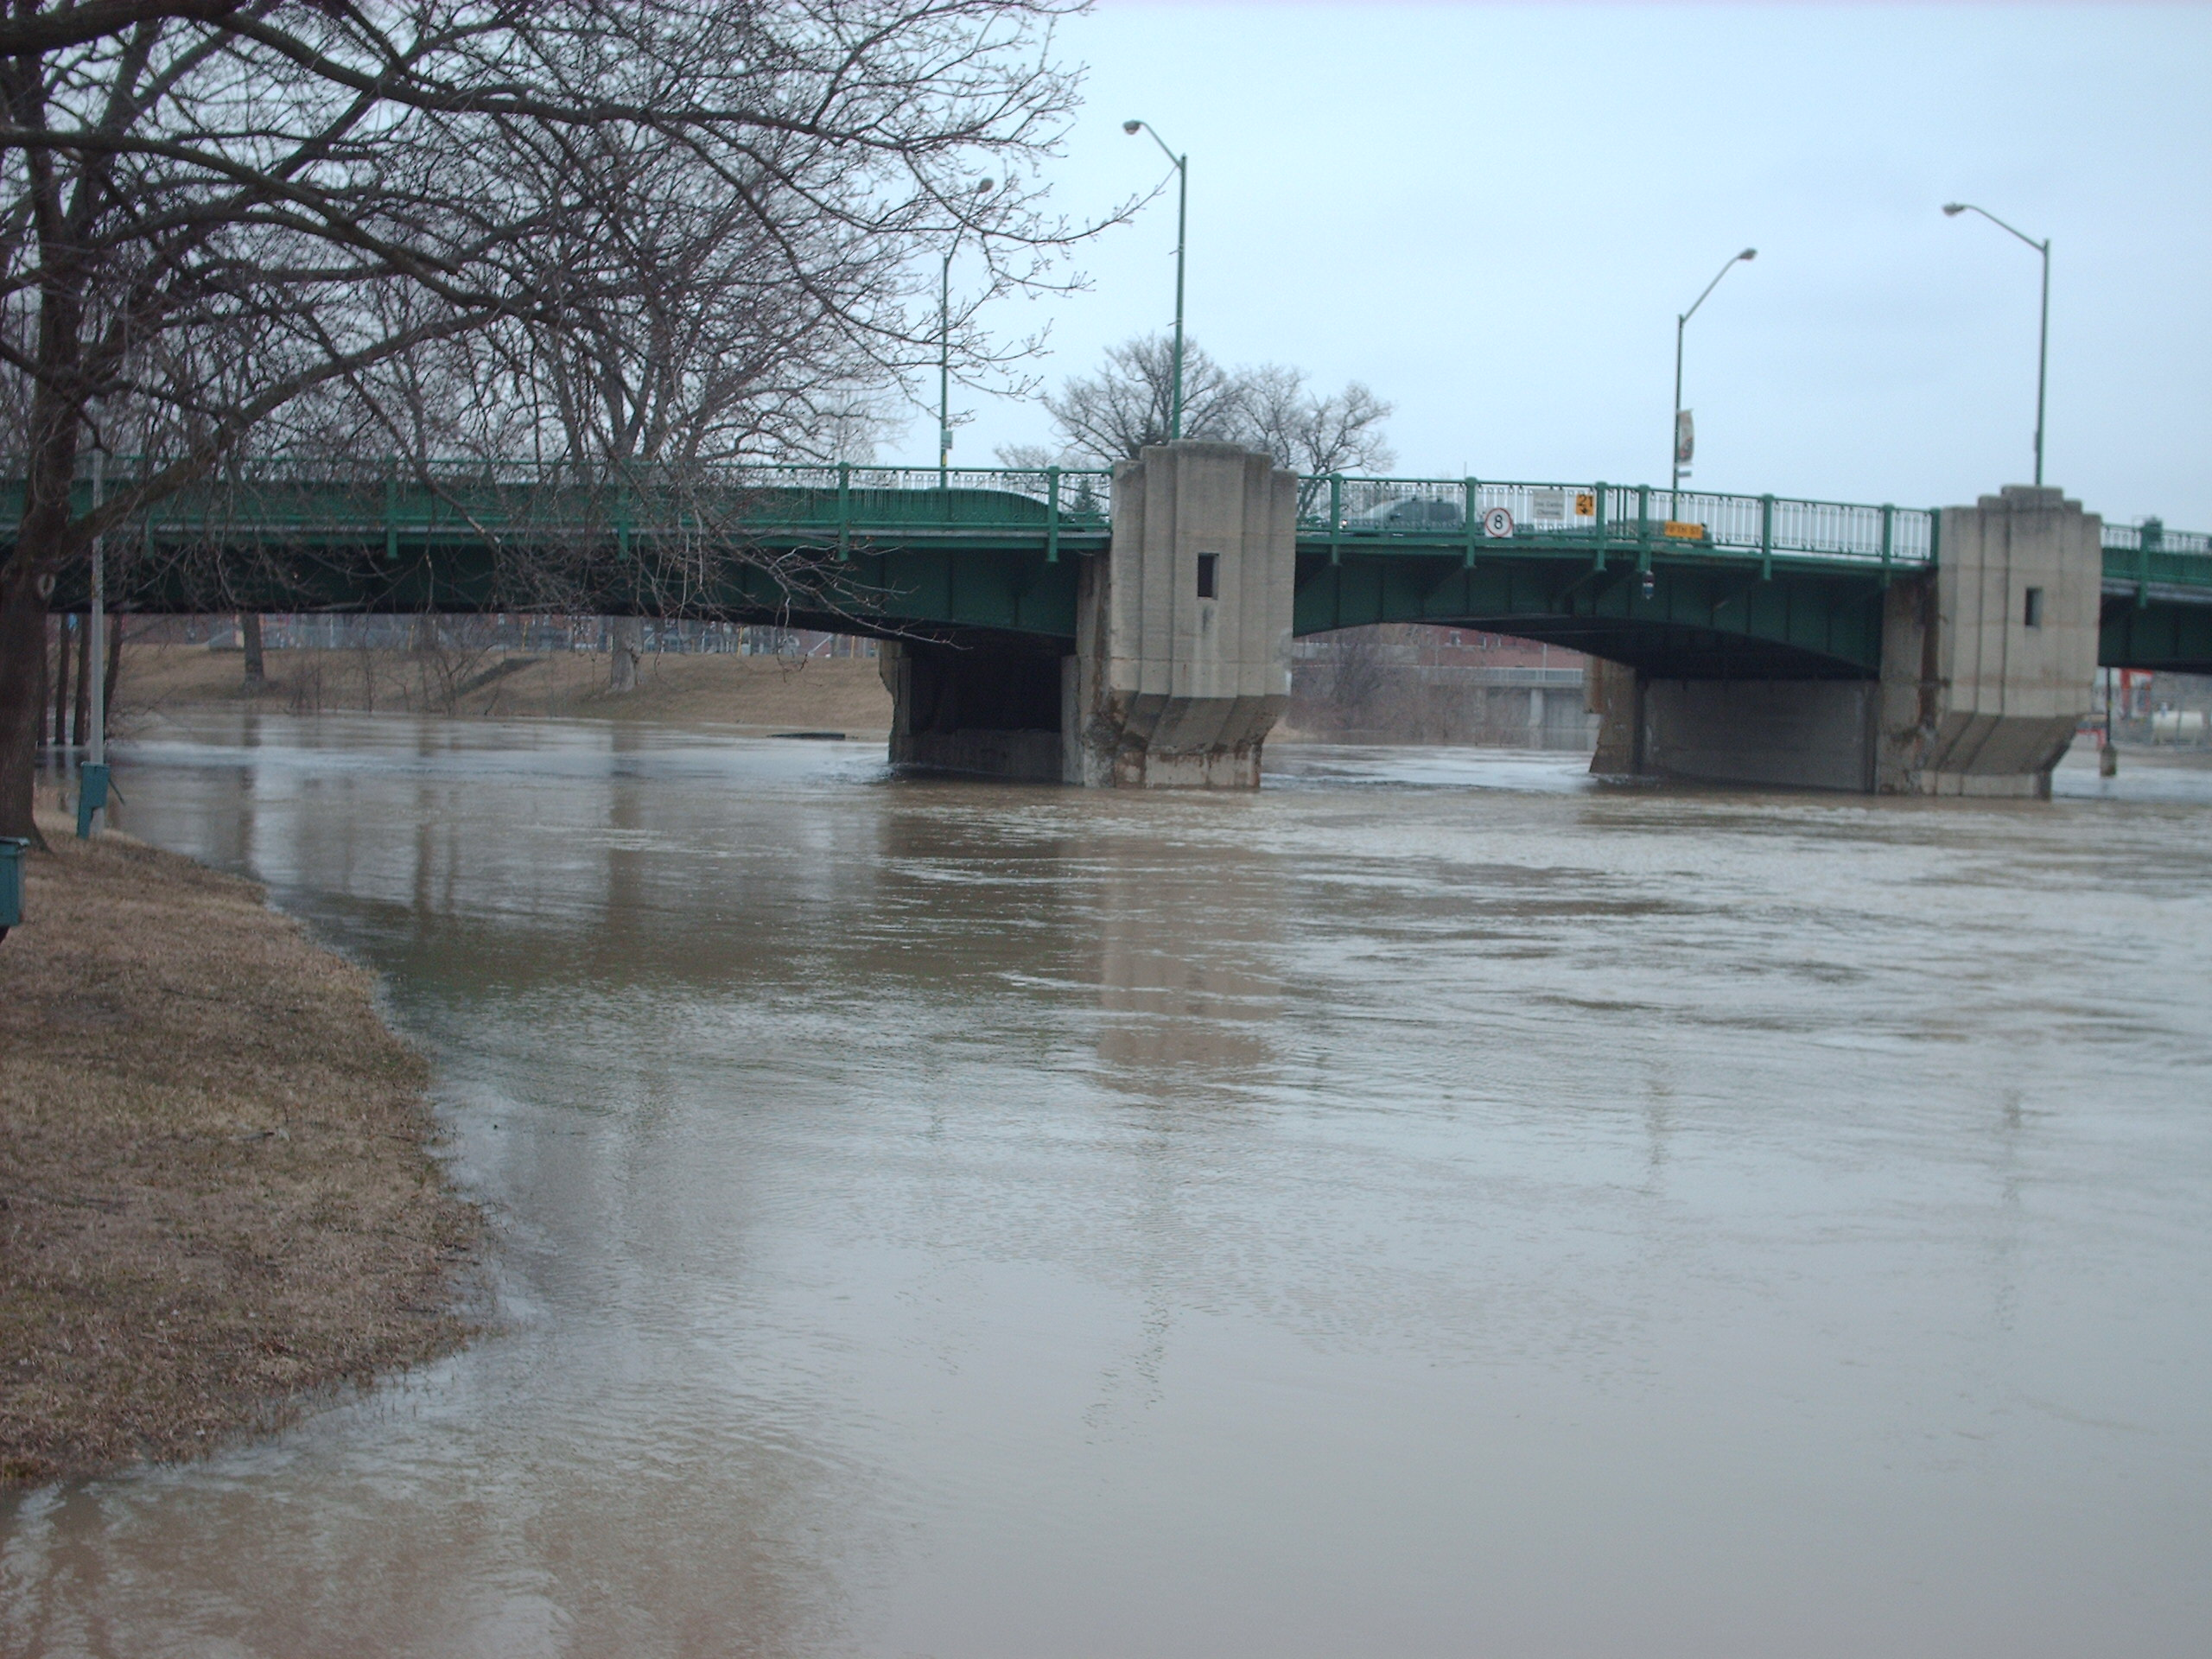 The Thames River flooding through Chatham. (BlackburnNews.com File Photo)